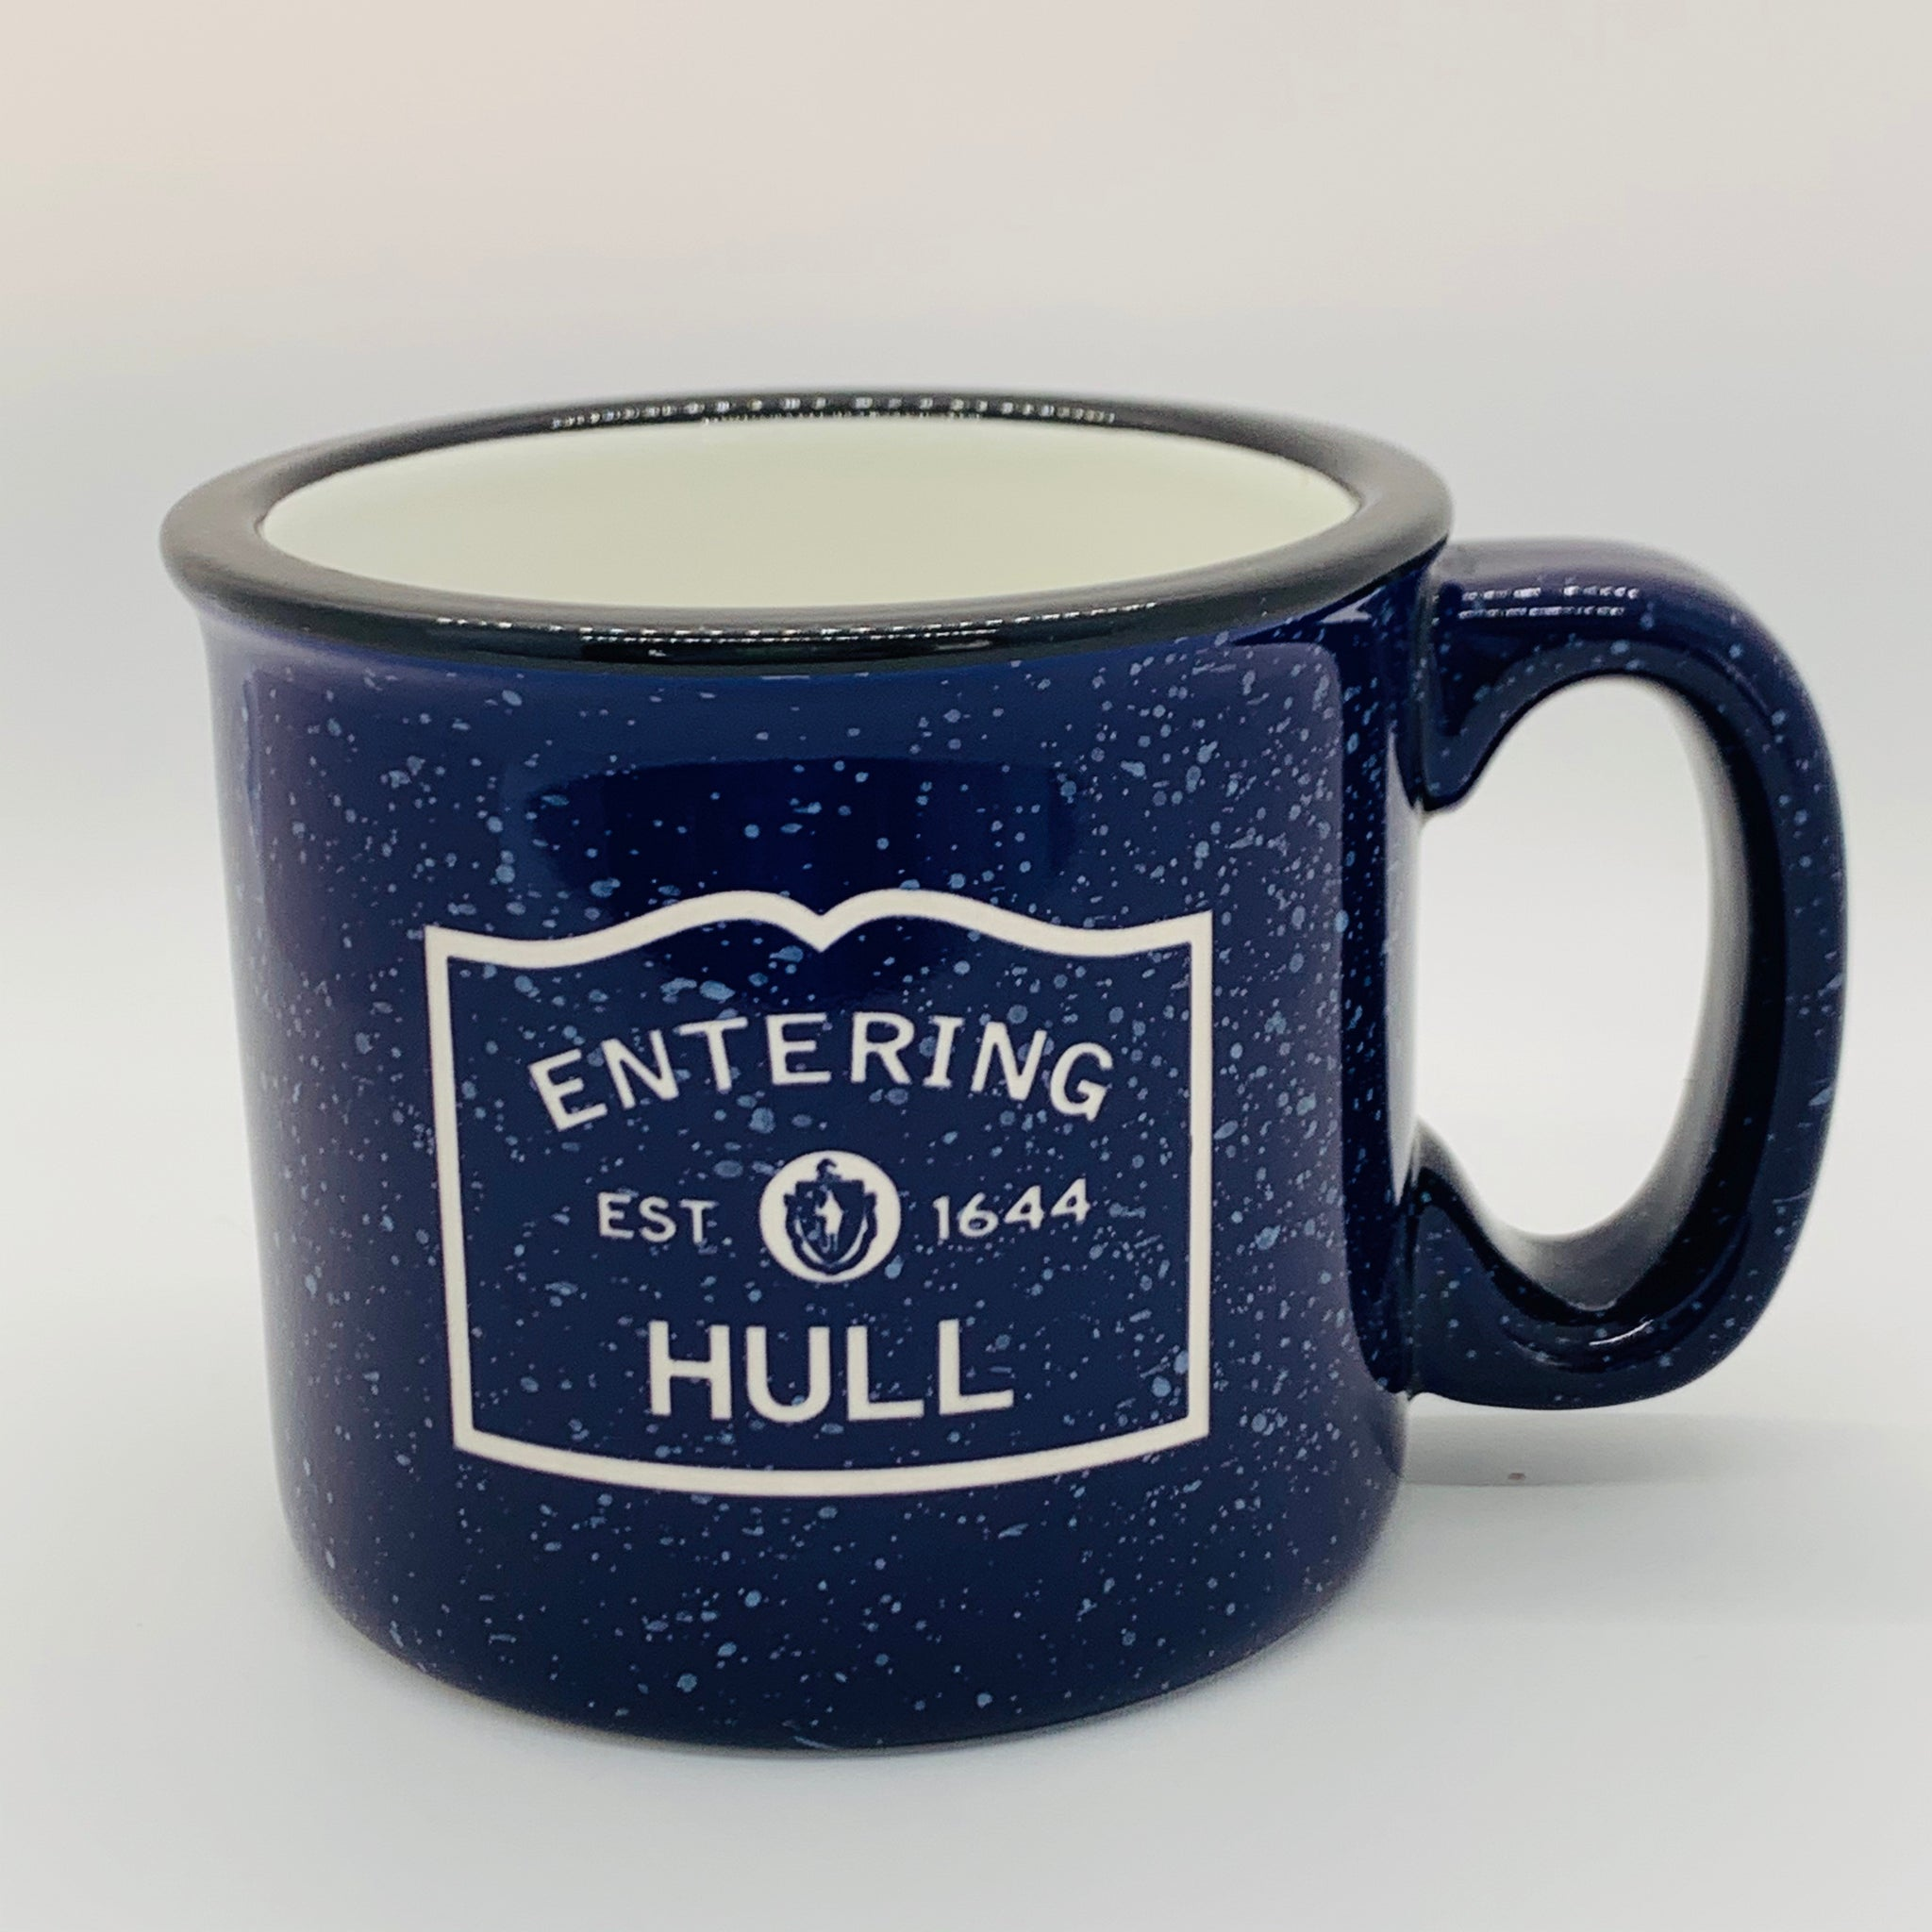 Entering Hull Colbalt Camp Mug